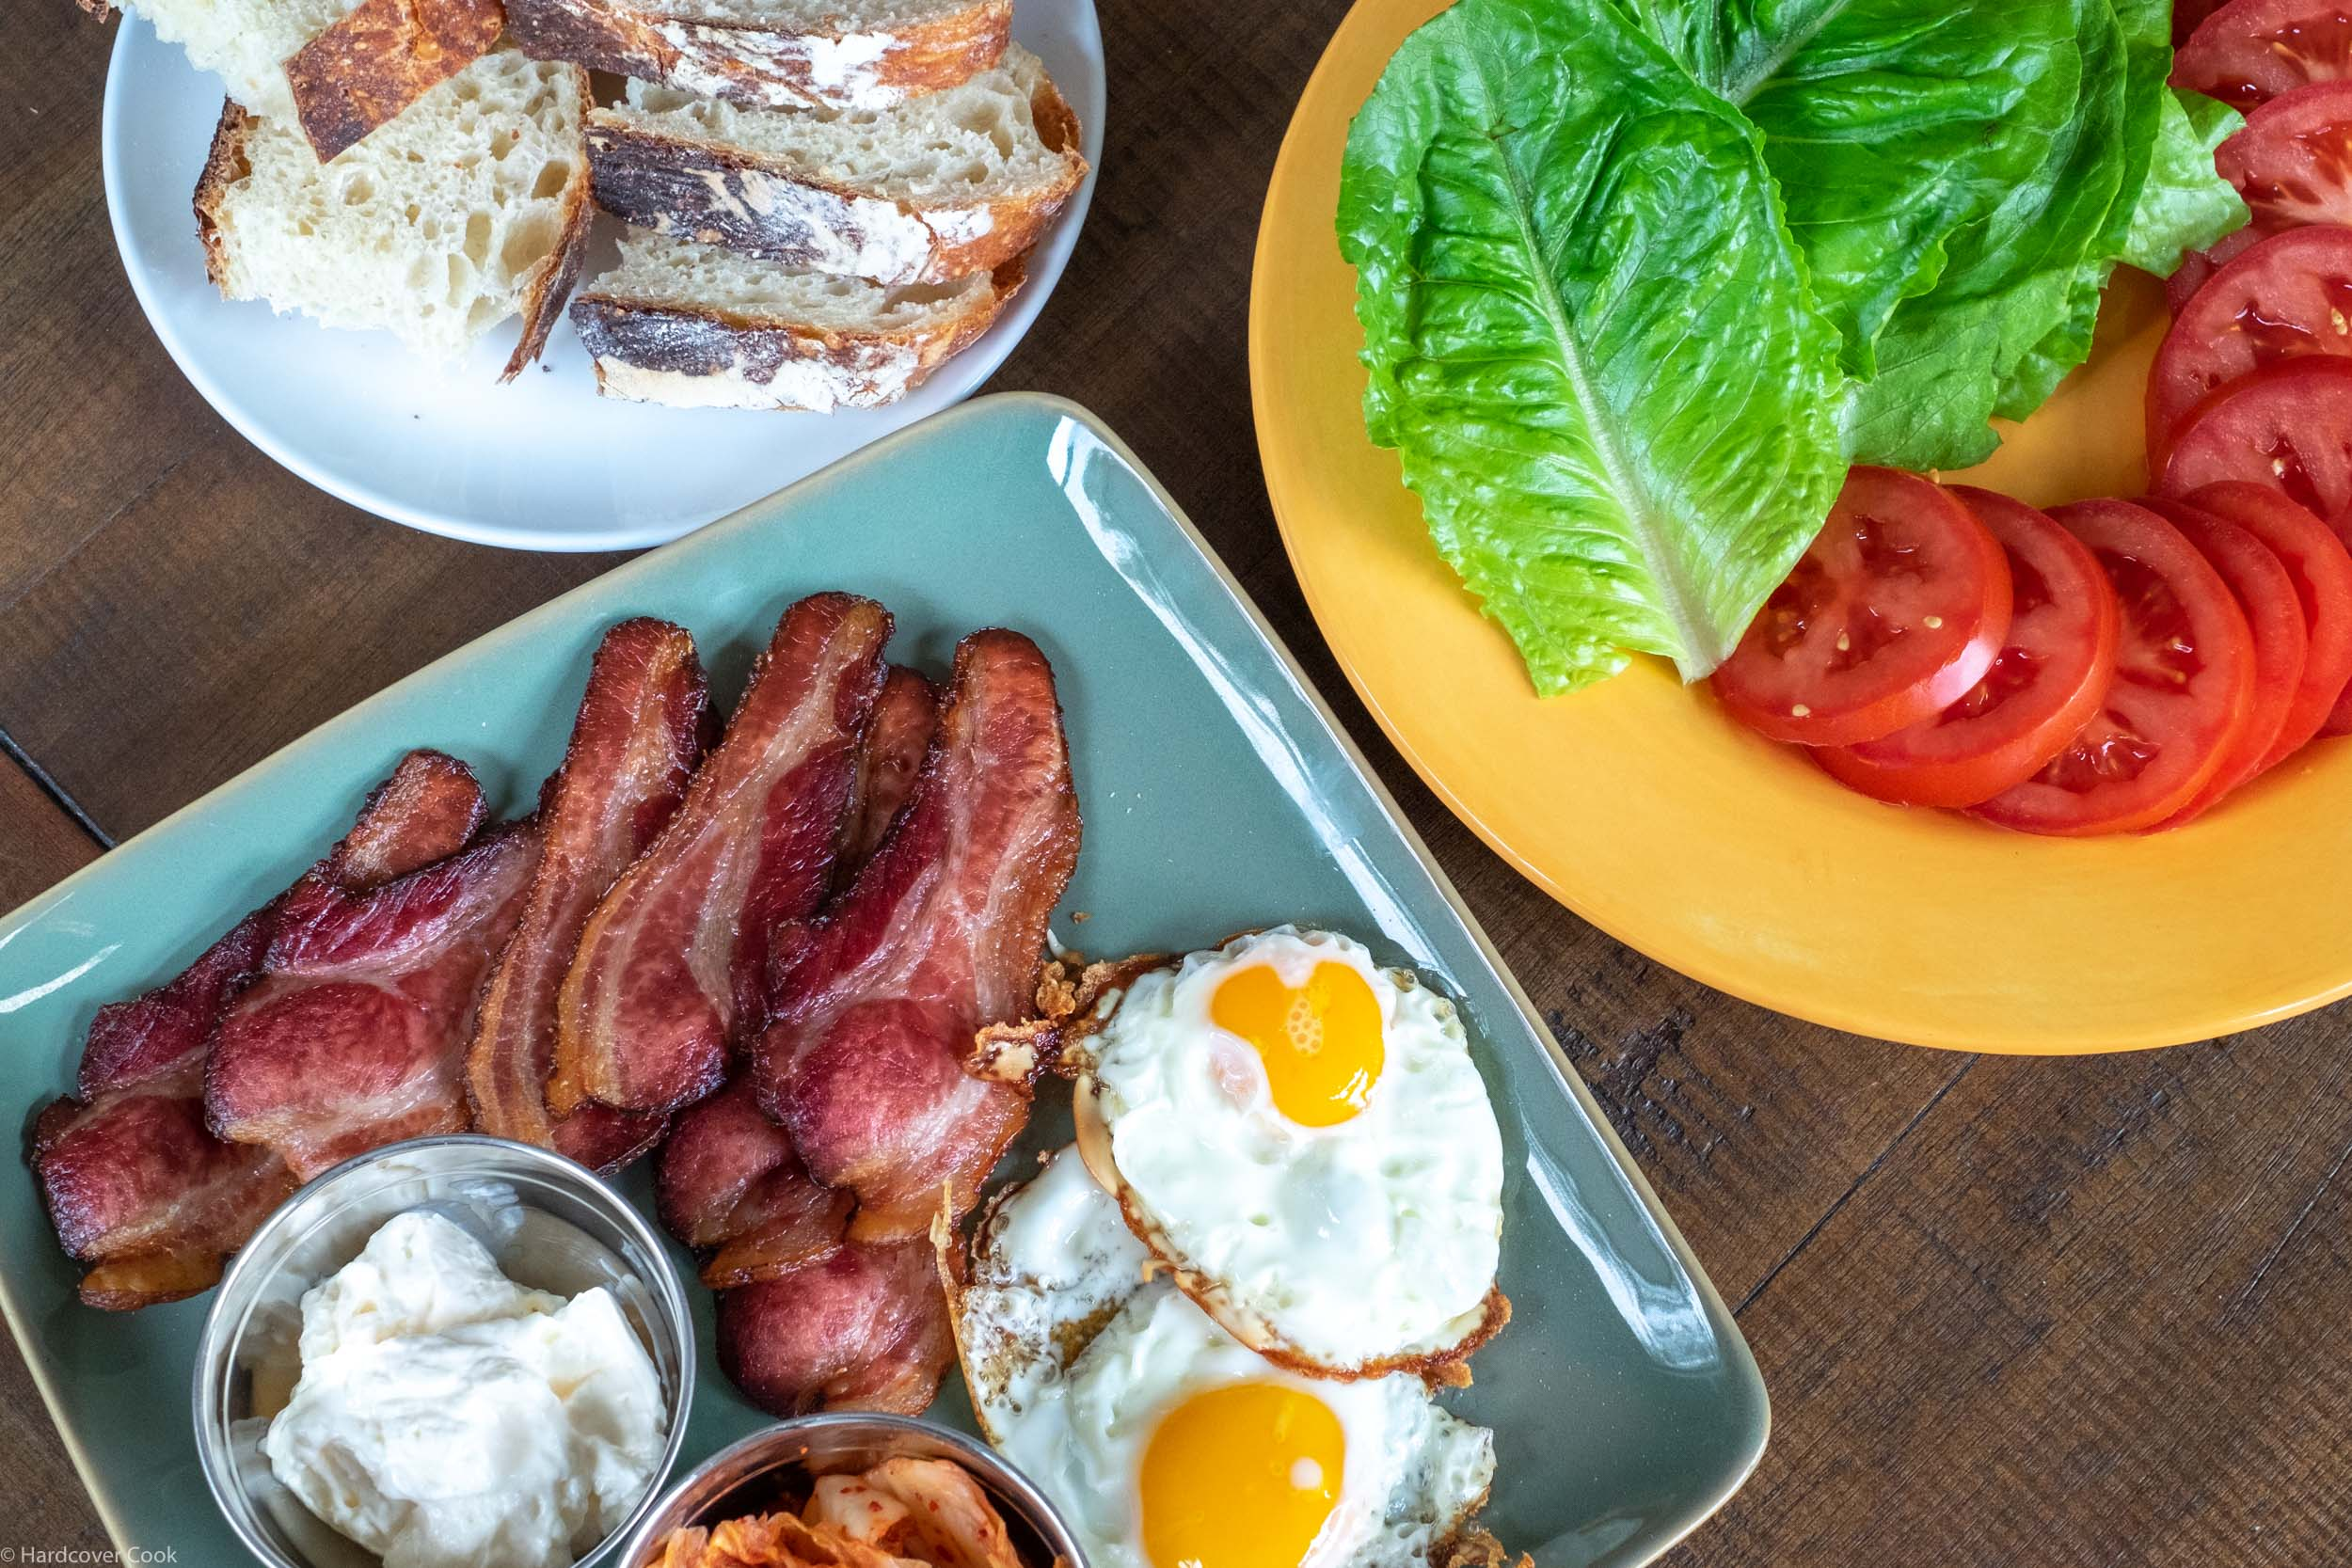 blts-with-bacon-fat-fried-eggs-from-where-cooking-begins.jpg